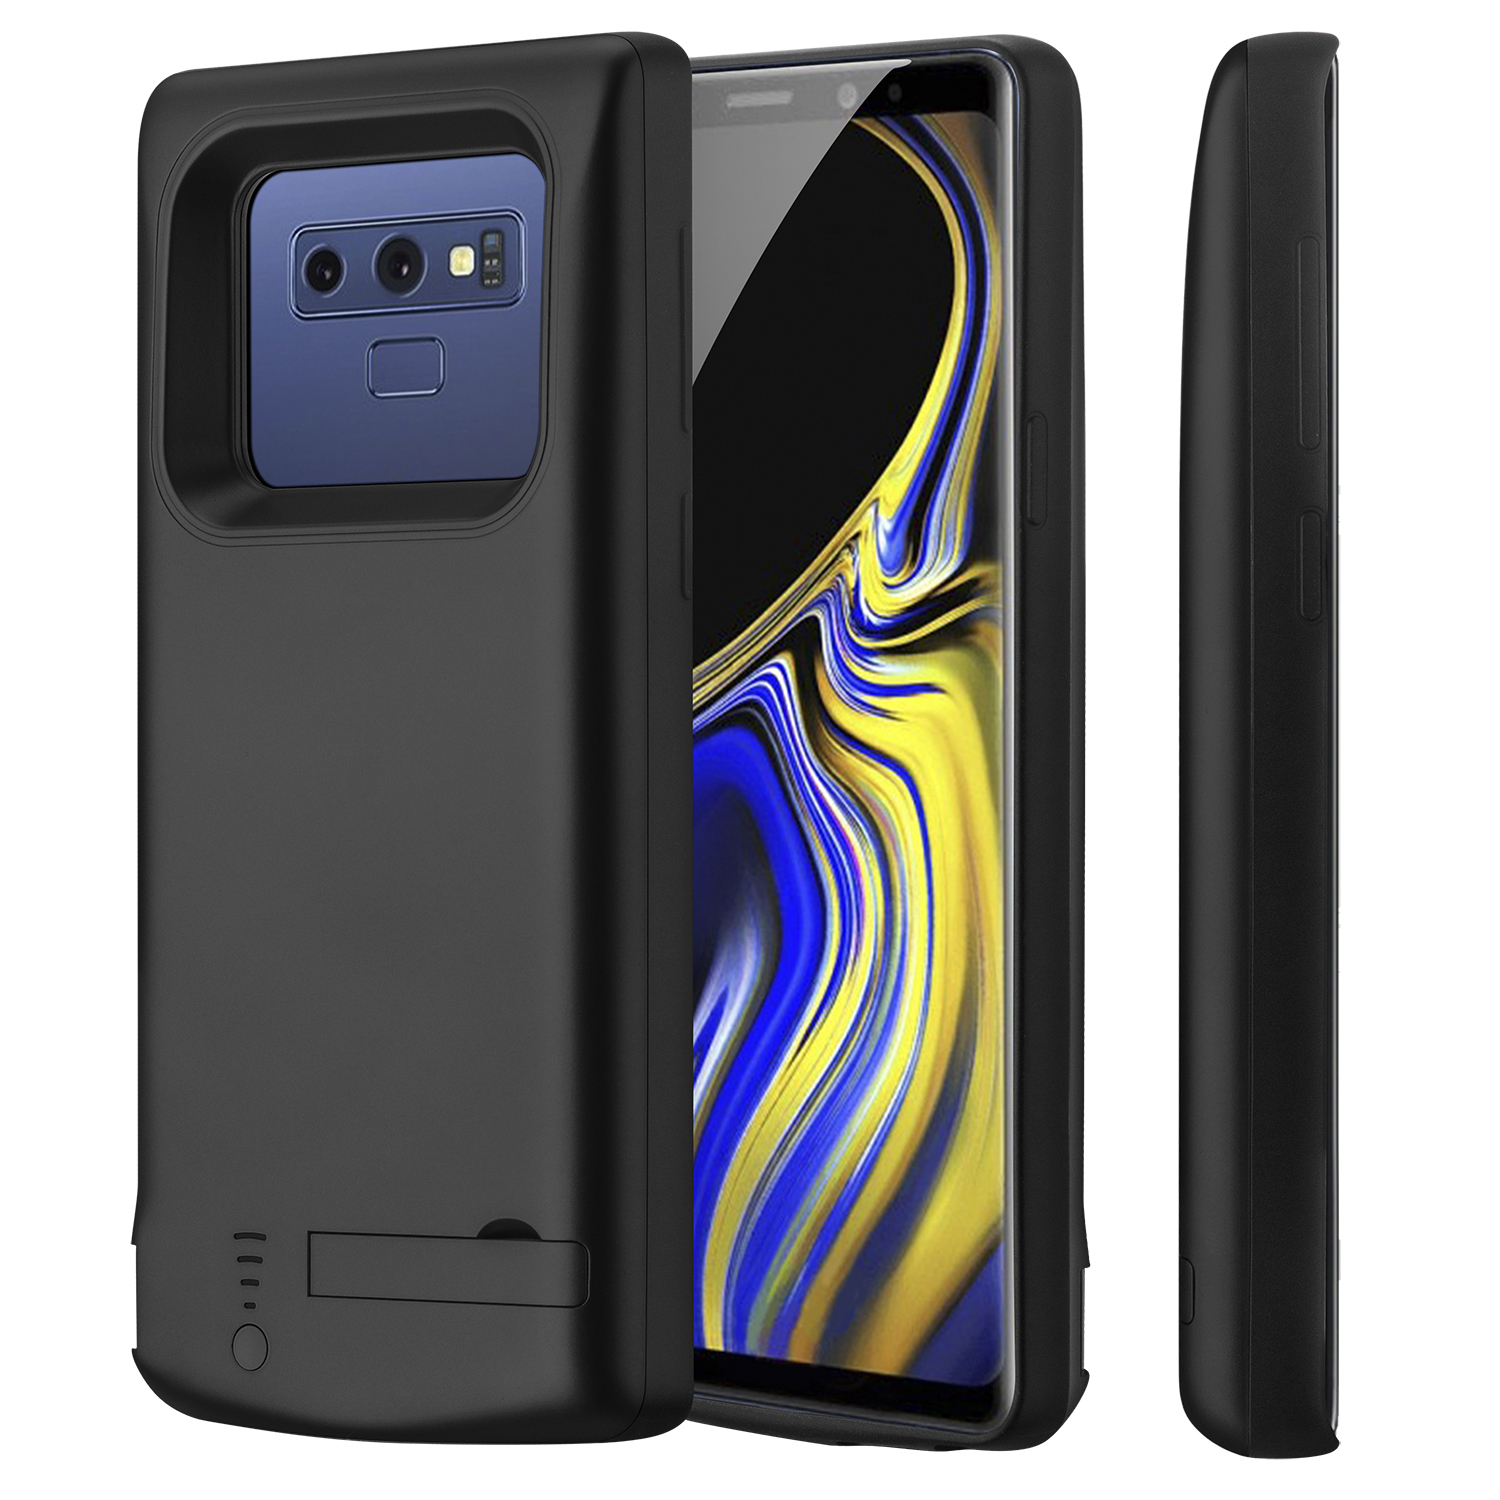 For Samsung Note 8 S8 Plus Power Bank Case 5000mah External Battery Charger For Galaxy S7 S6 S5 4200mah Backup Charger Cover Grade Products According To Quality Cellphones & Telecommunications